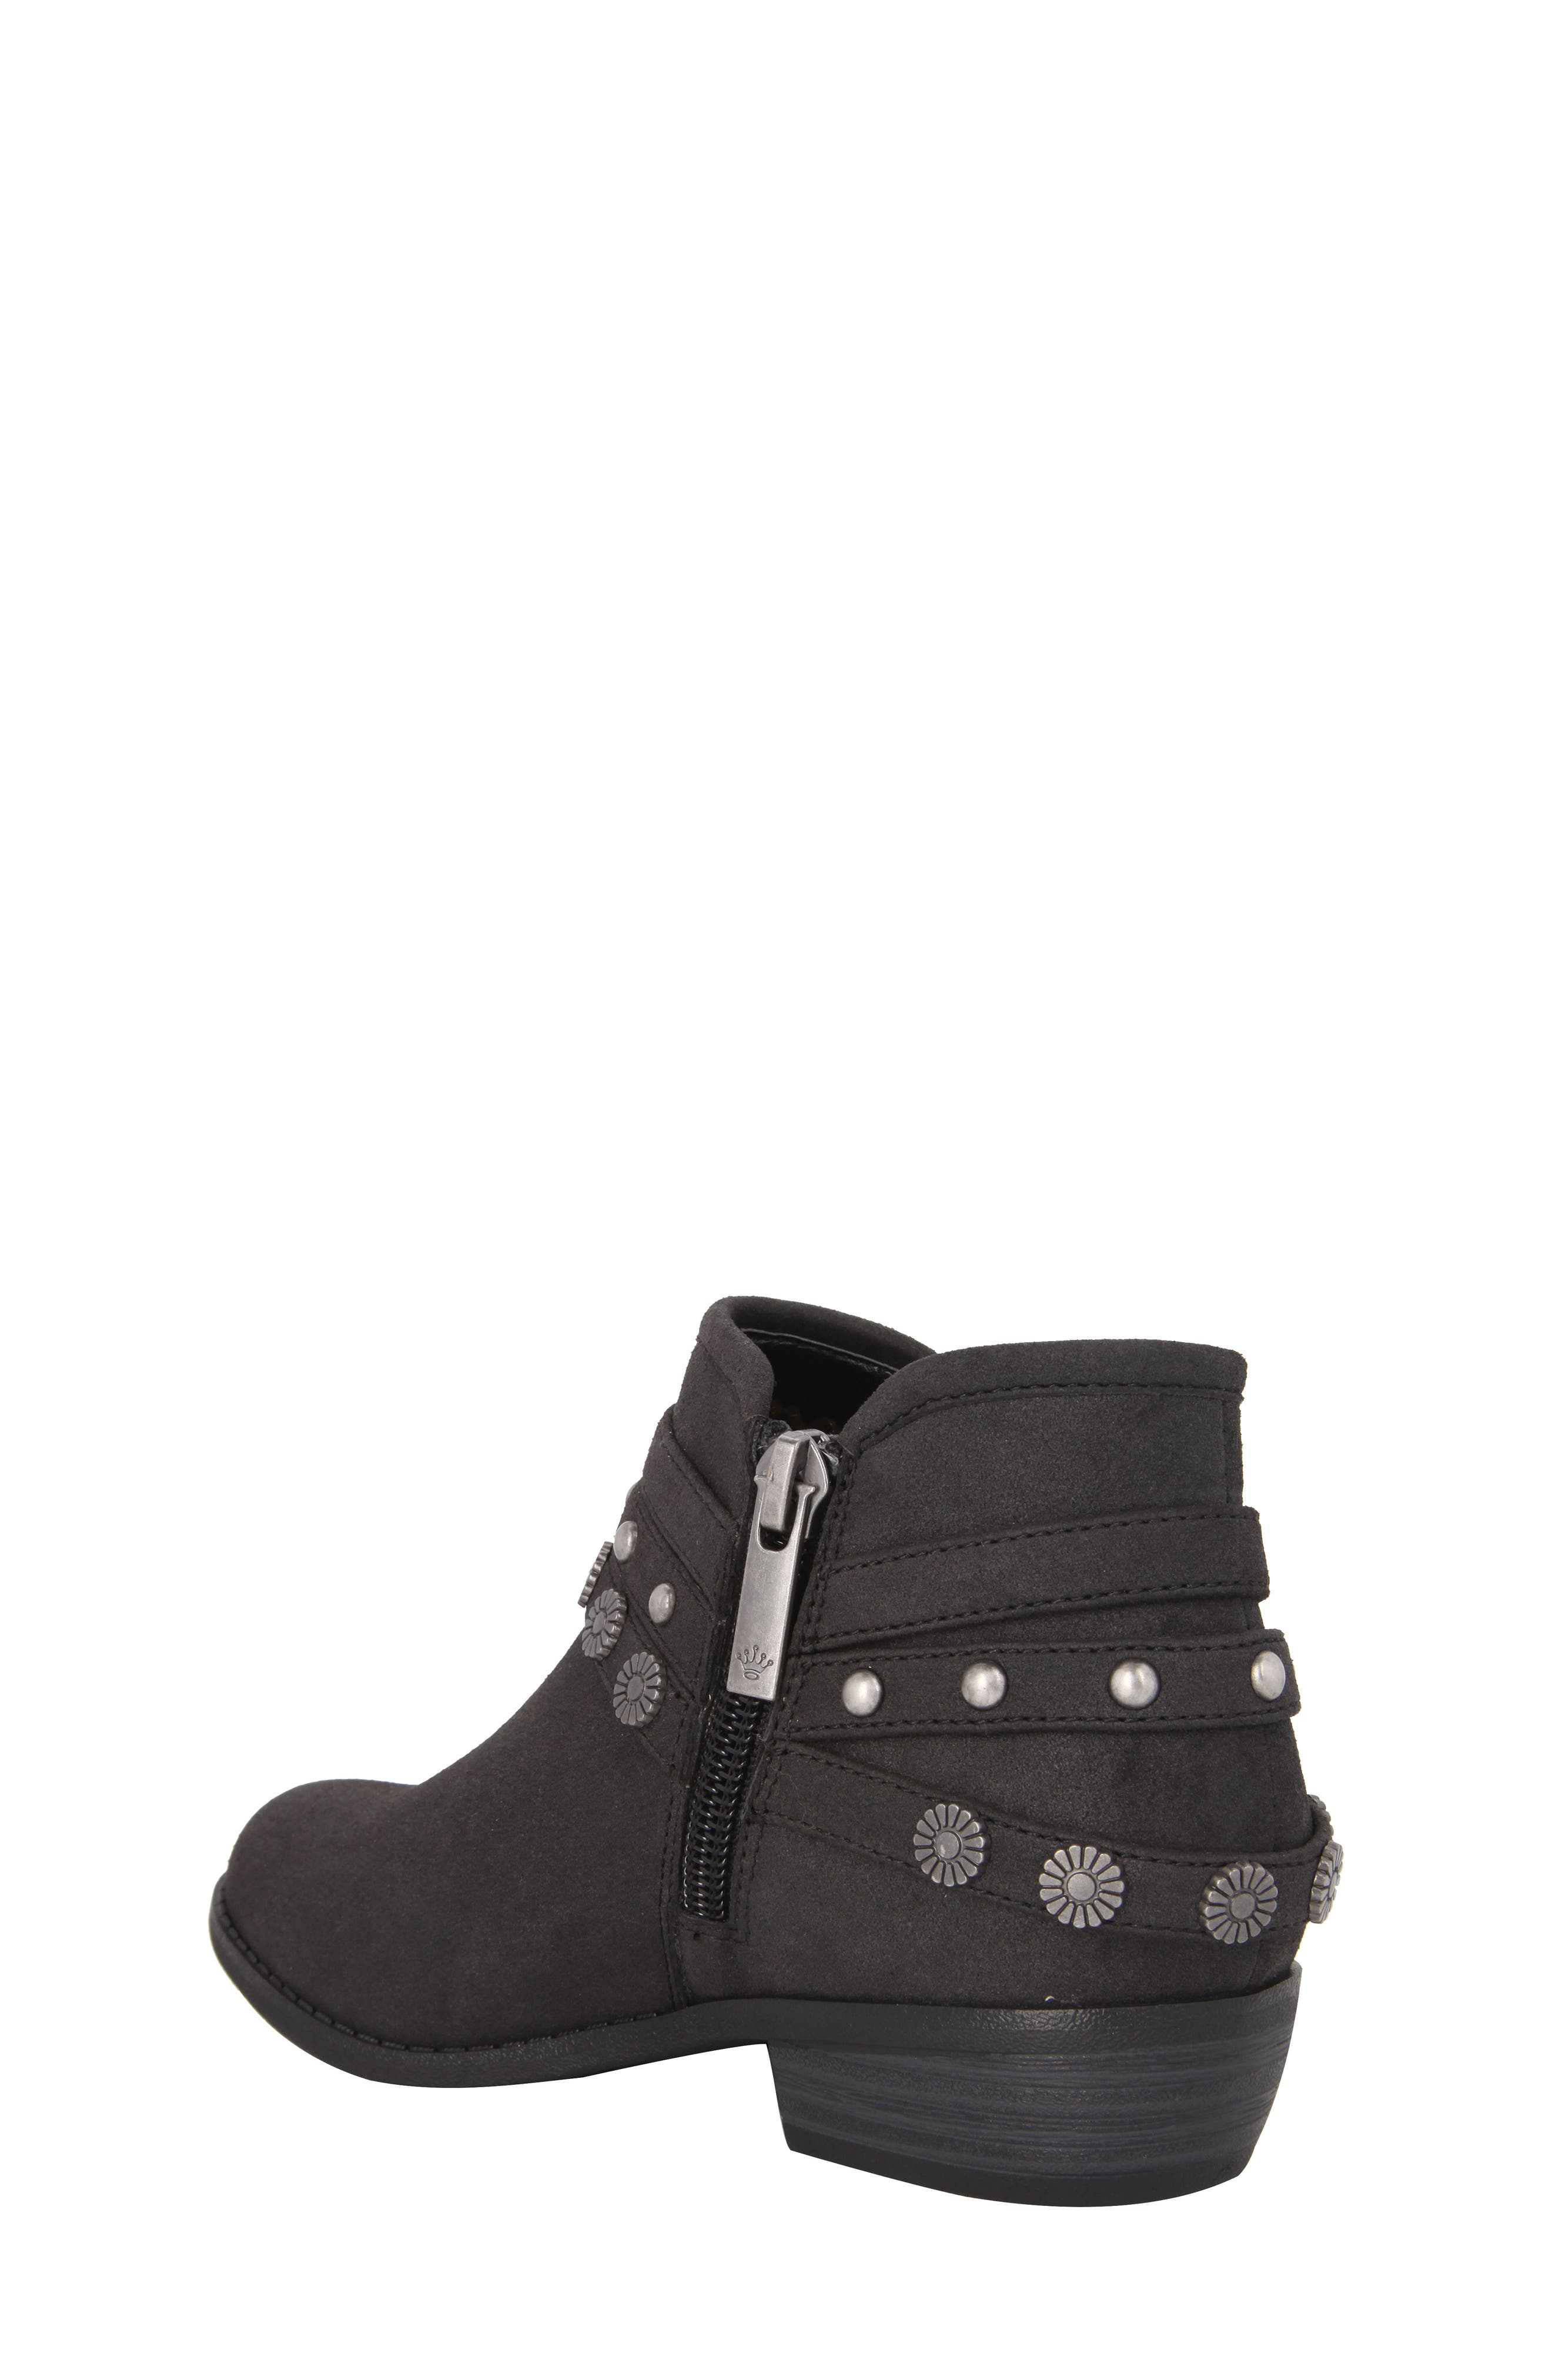 Zoe Strappy Low Bootie,                             Alternate thumbnail 2, color,                             003